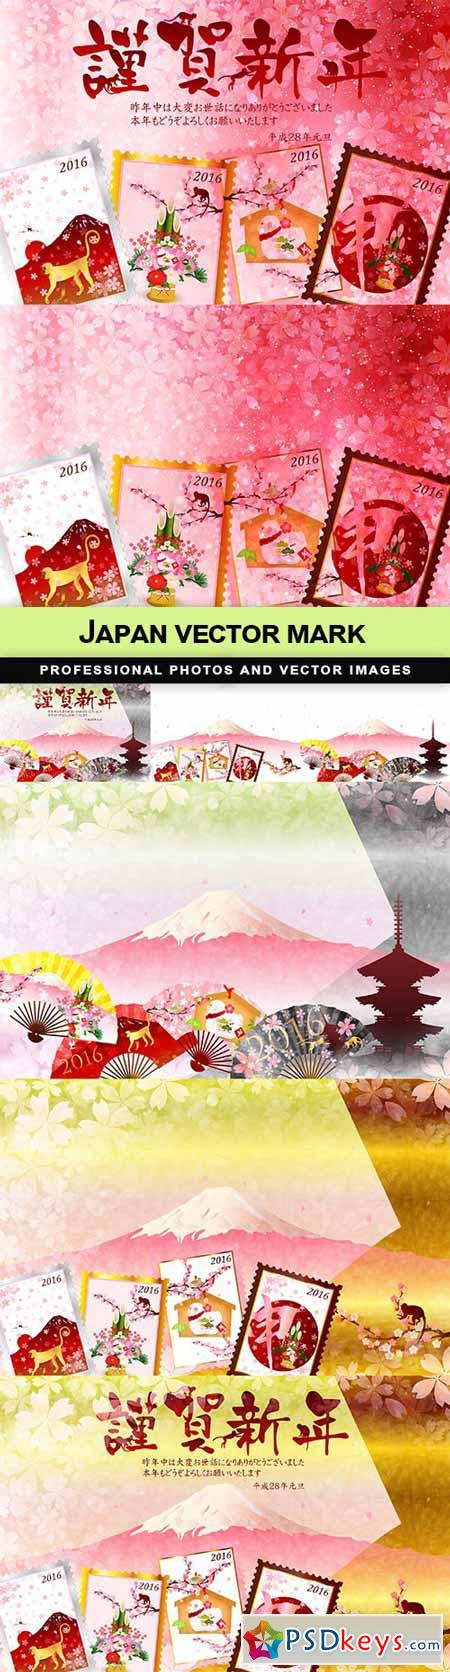 Japan vector mark - 8 EPS